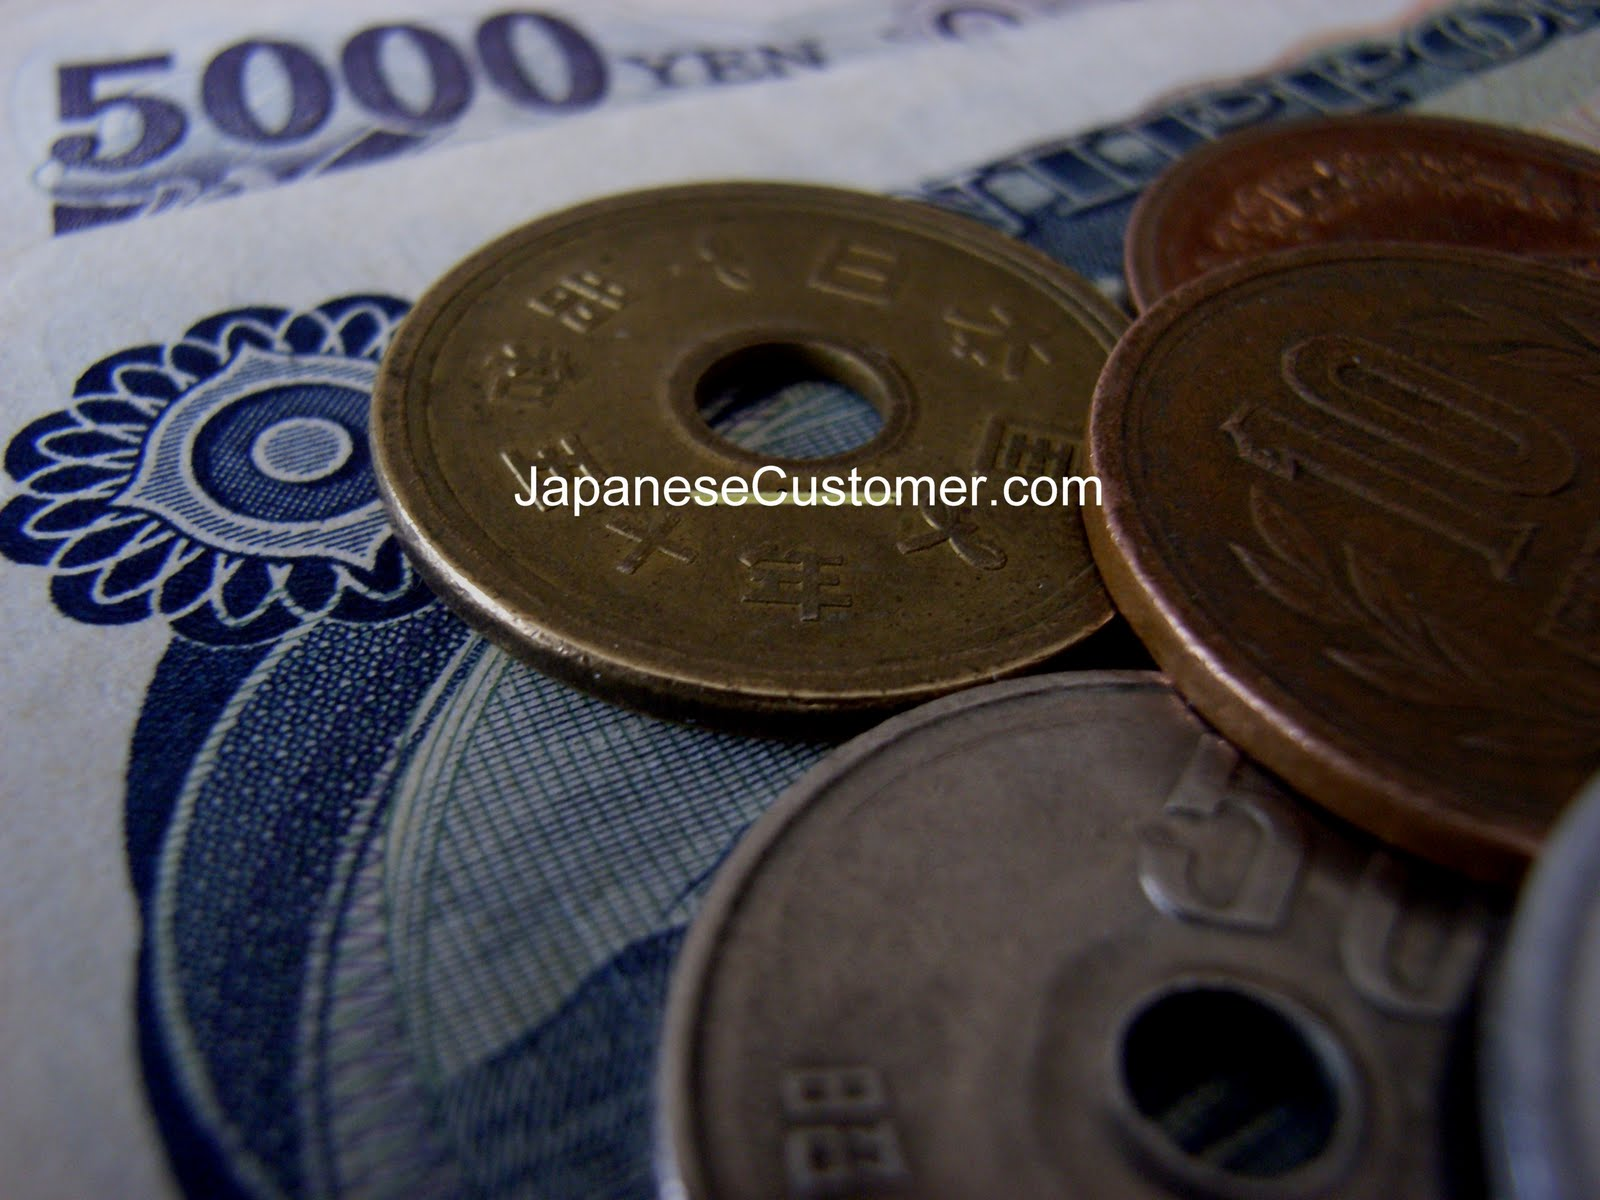 Japanese currency Copyright Peter Hanami 2004